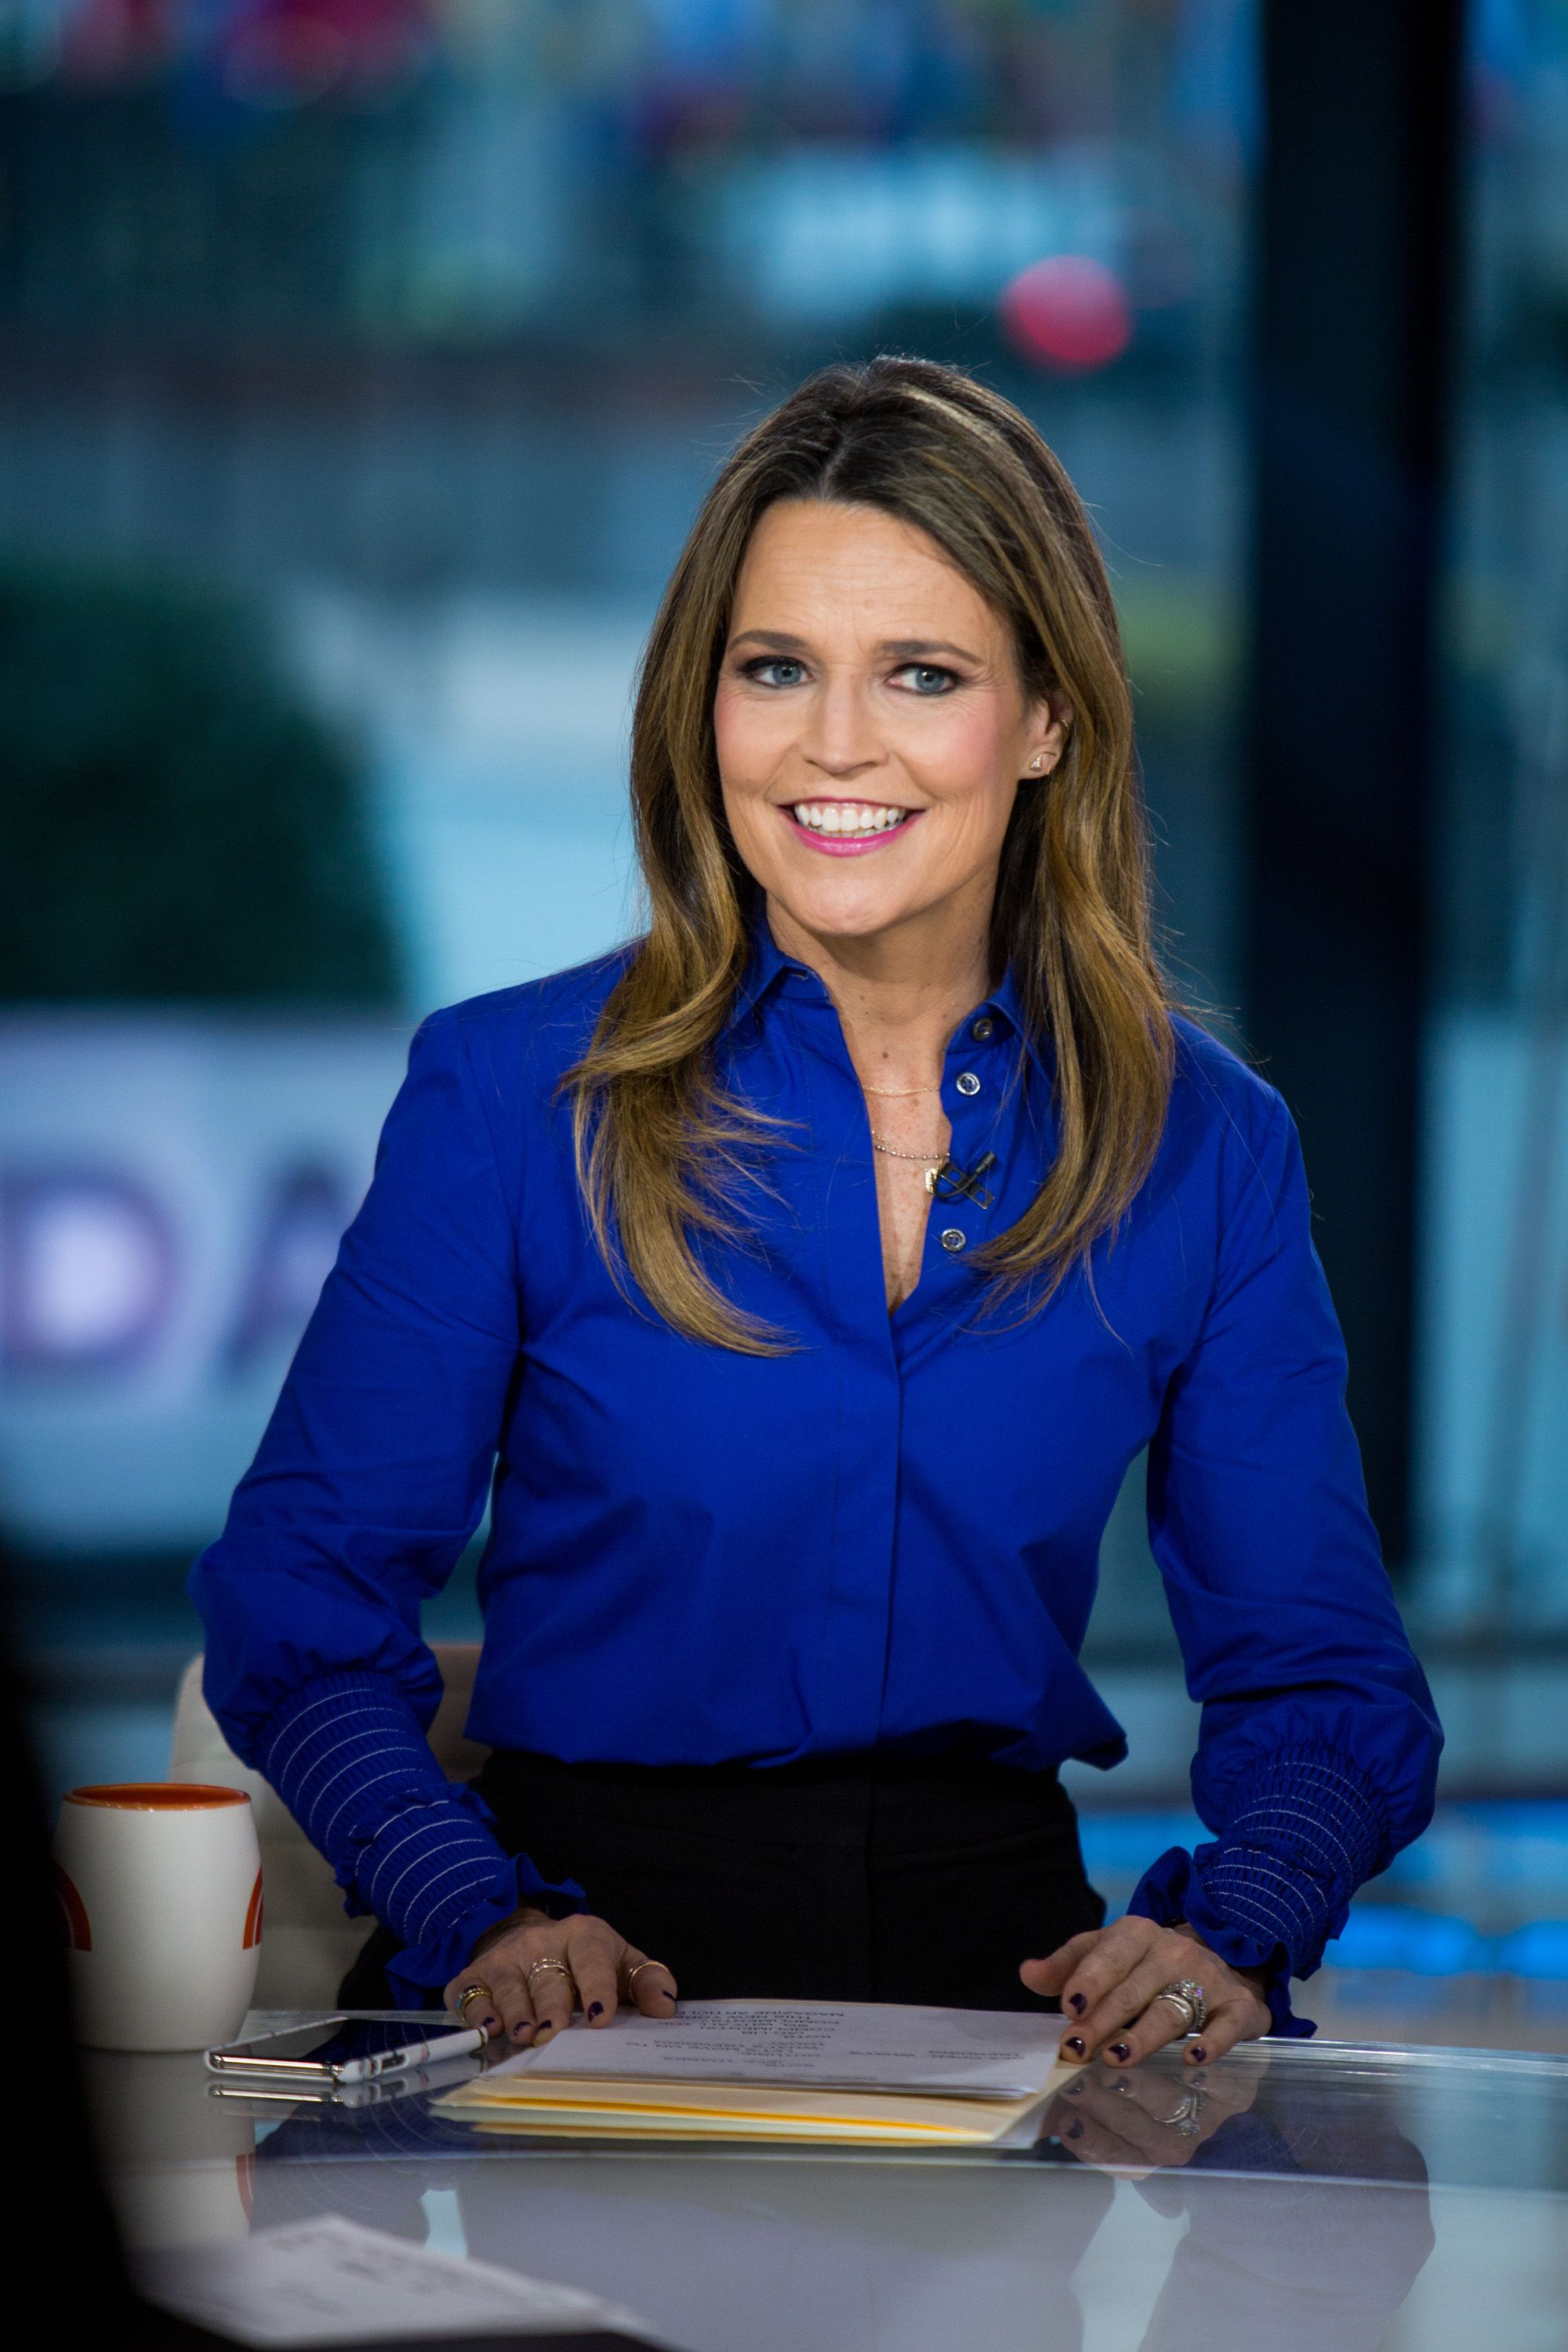 'Today' Star Savannah Guthrie Has Pneumonia, Says It's the Sickest She's Ever Been